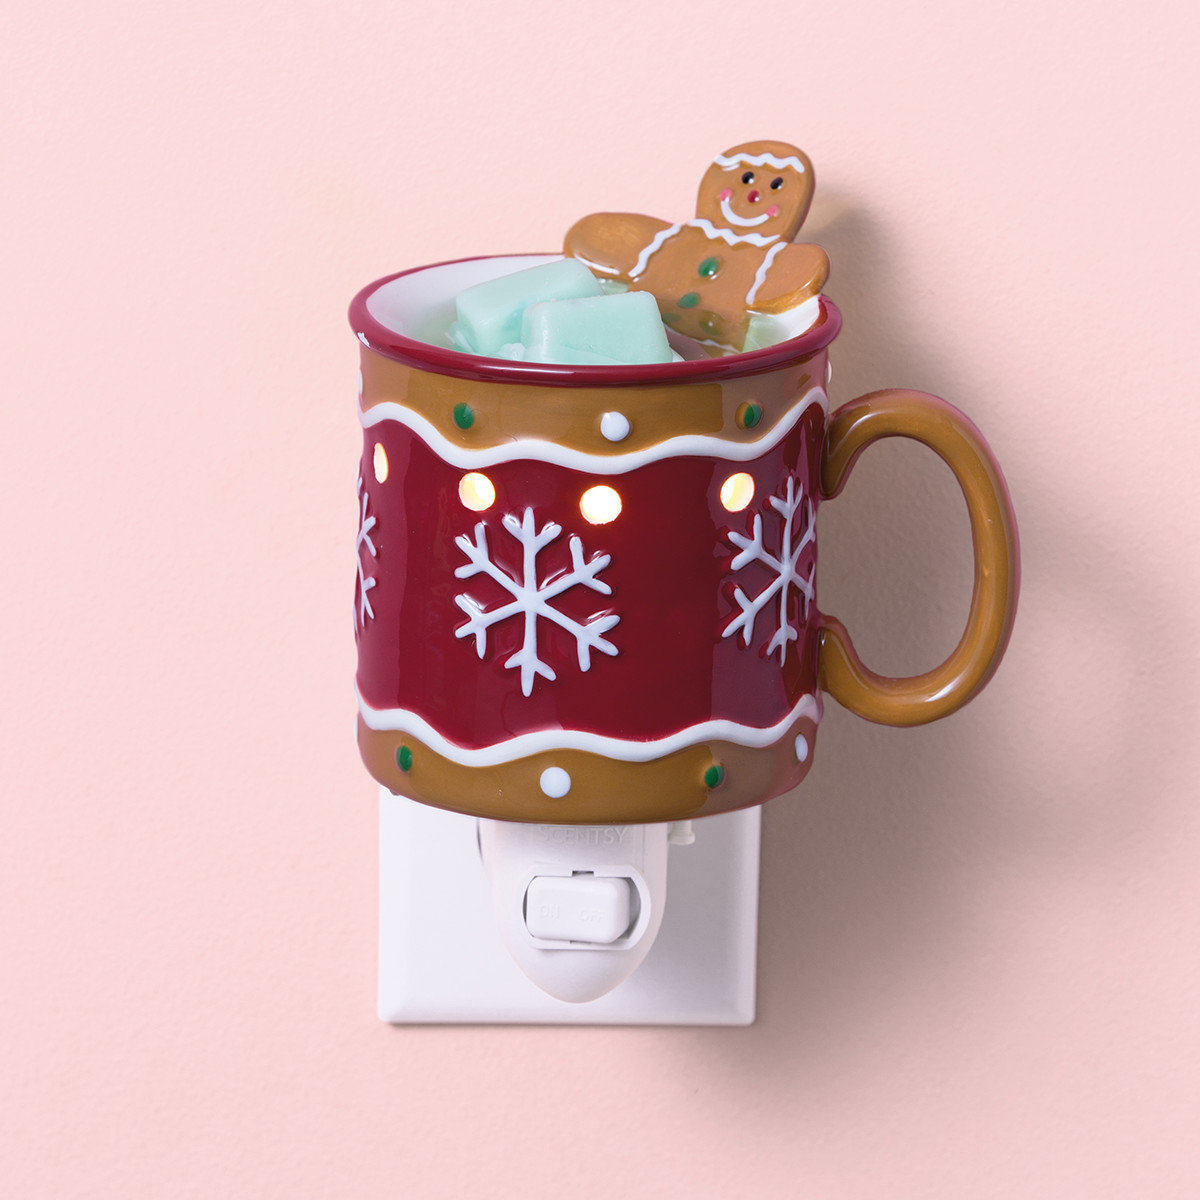 gingerbread man scentsy mini warmer scentsy warmers the safest